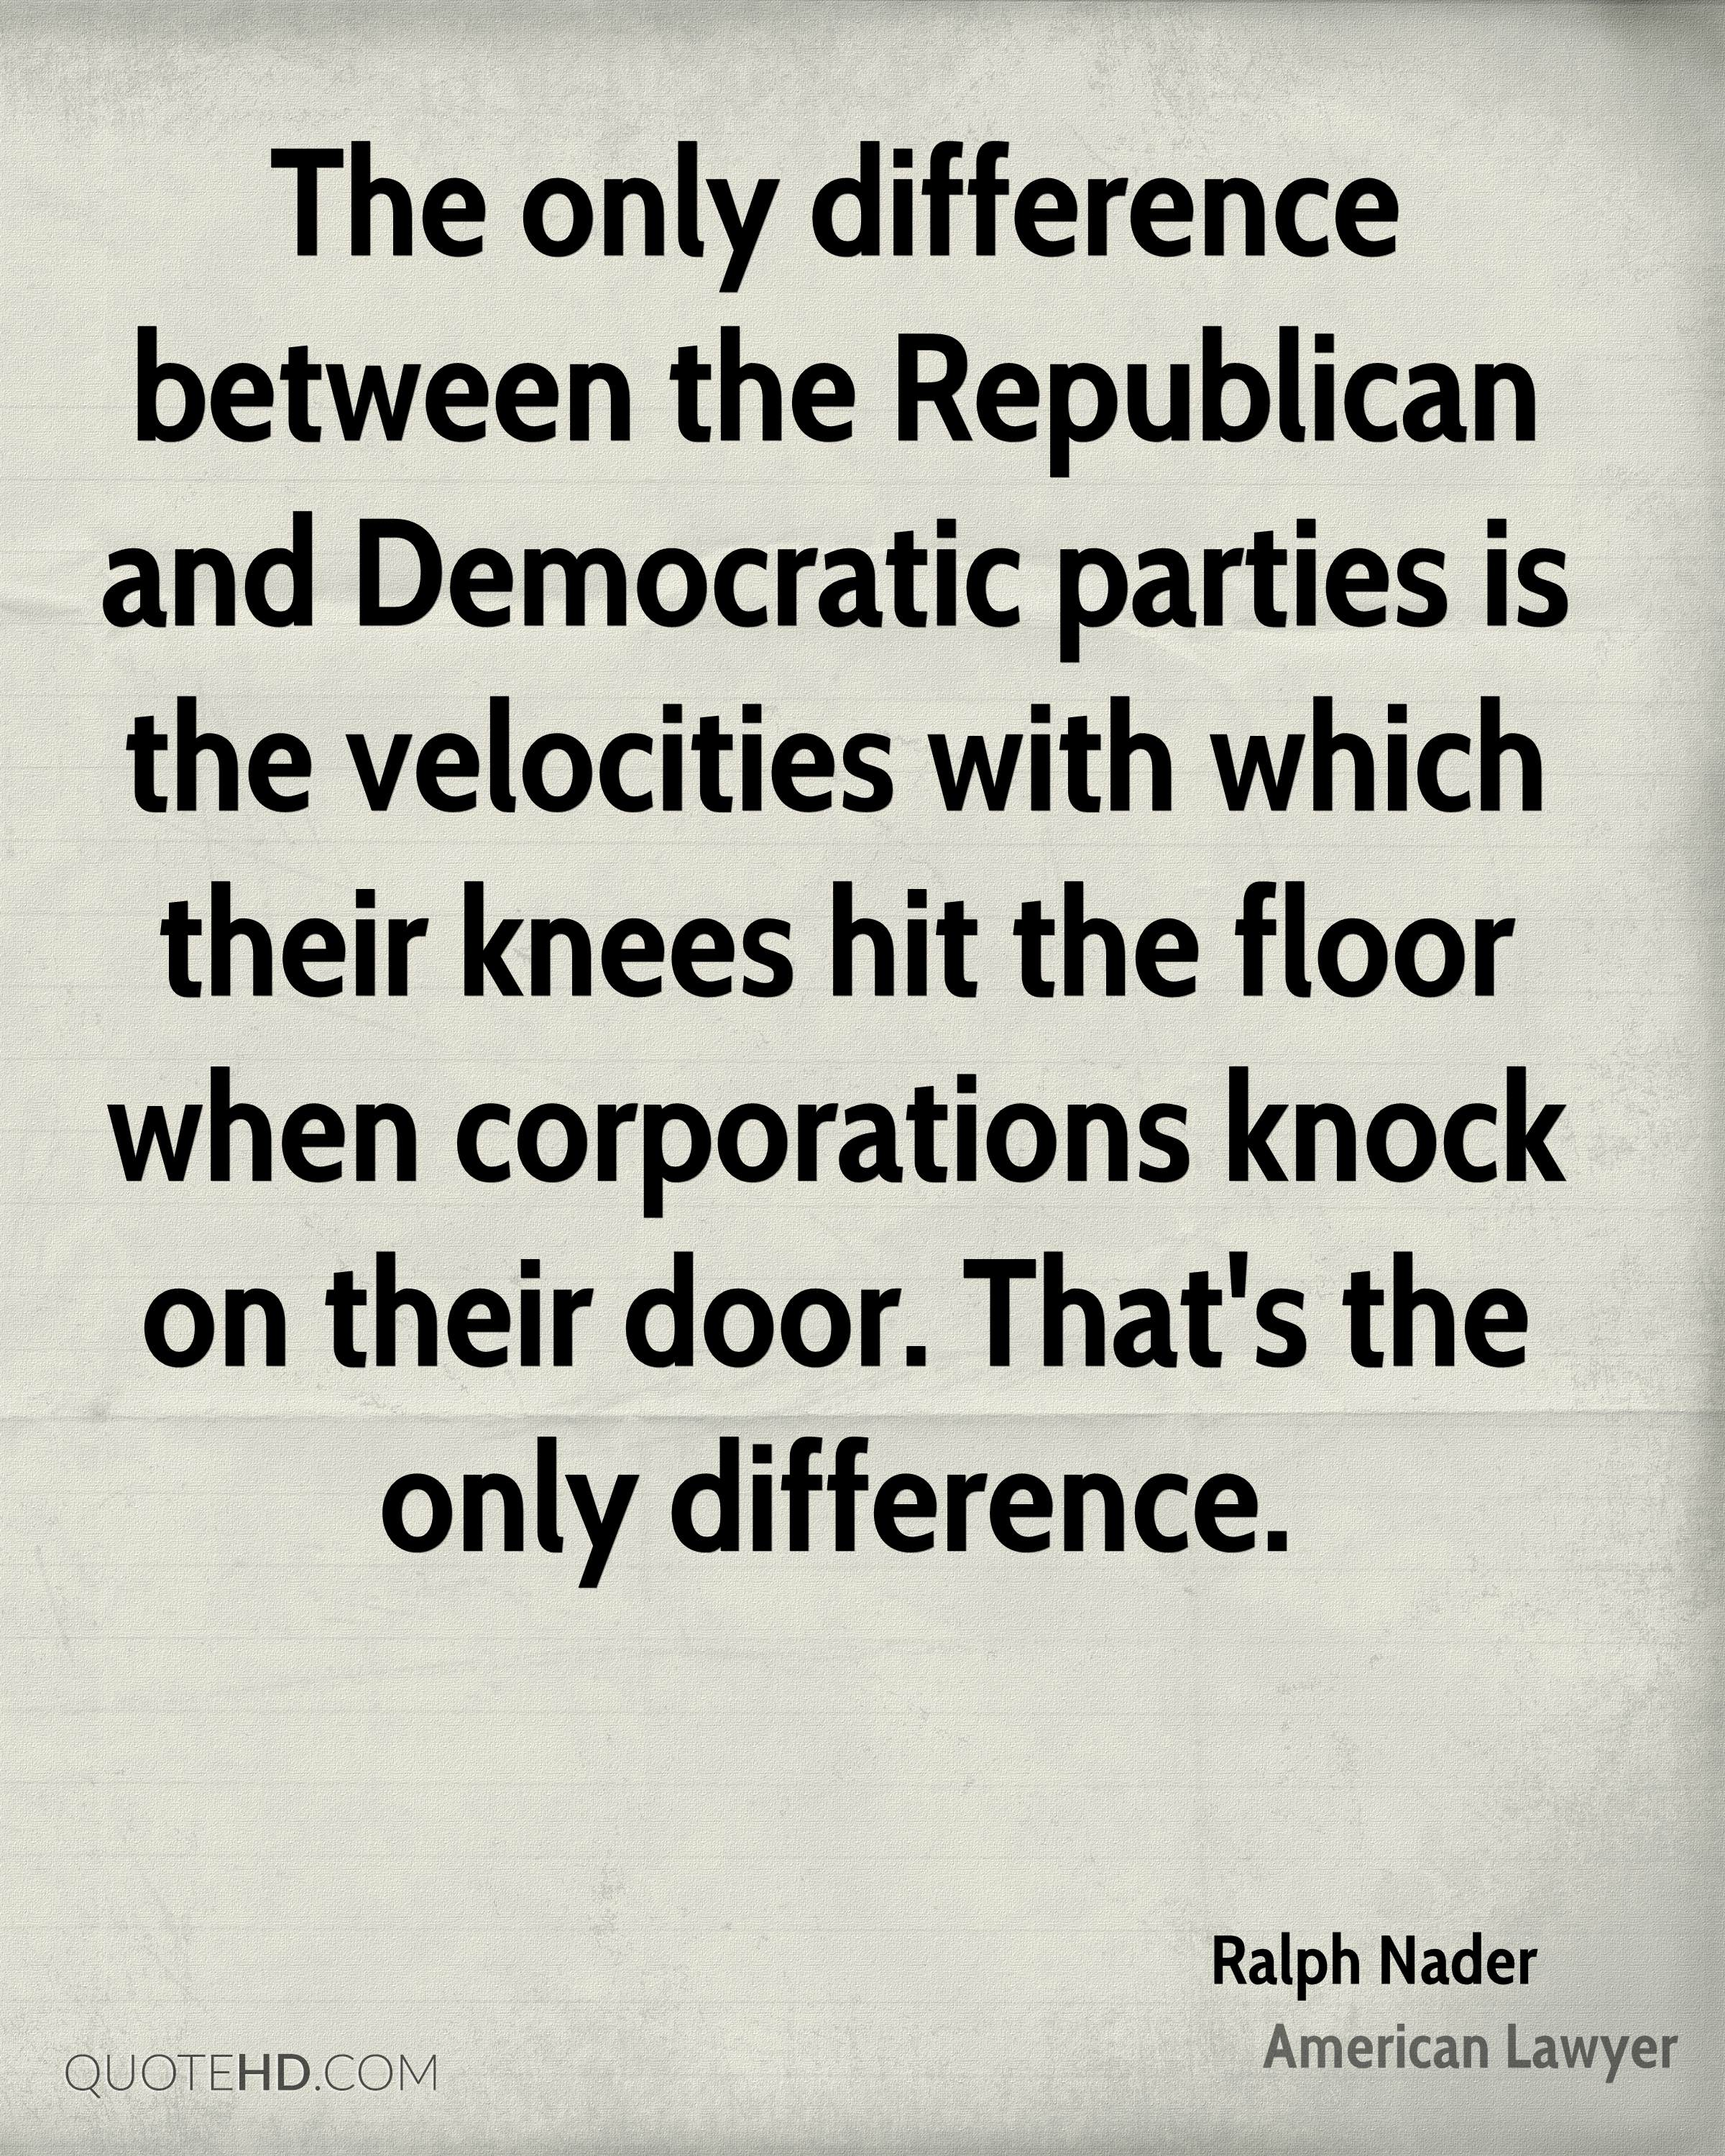 The only difference between the Republican and Democratic parties is the velocities with which their knees hit the floor when corporations knock on their door. That's the only difference.